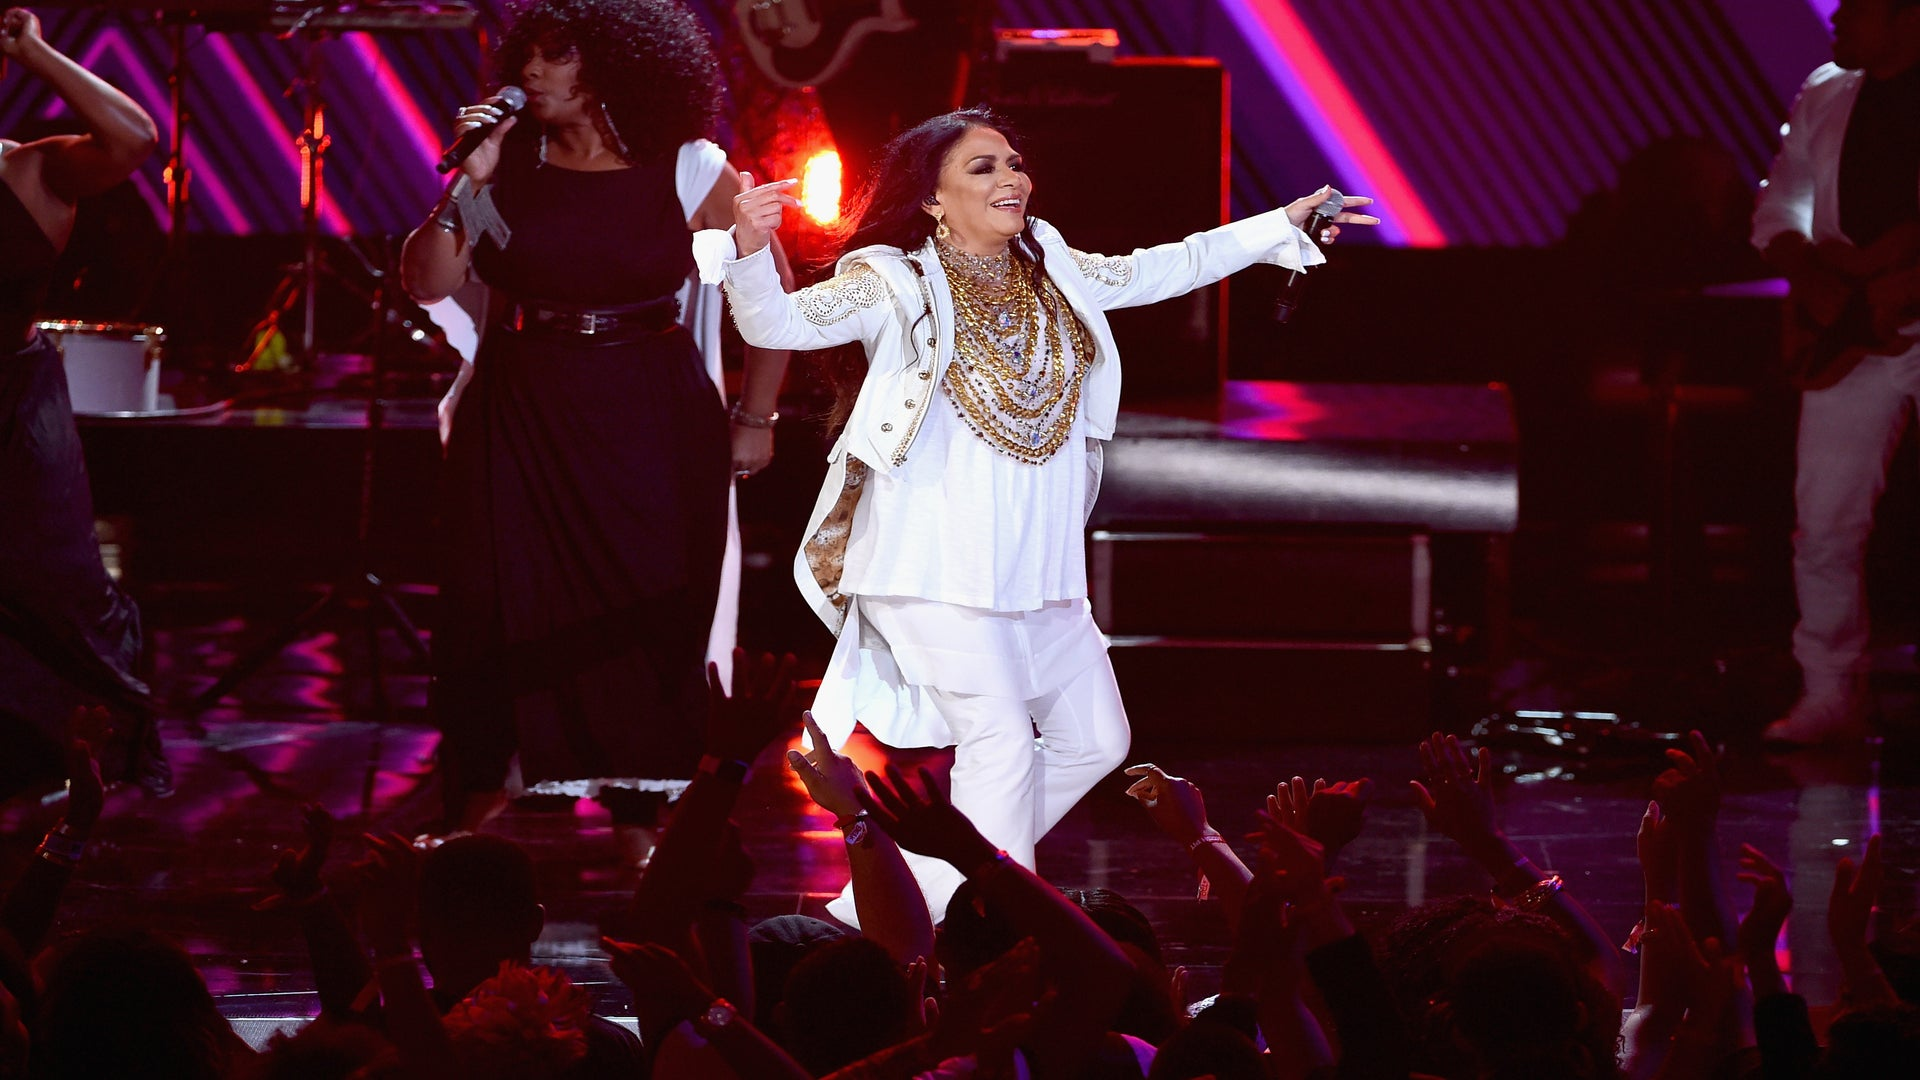 Sheila E's Prince Tribute Was Phenomenal: 14 Facts About the Iconic Drummer